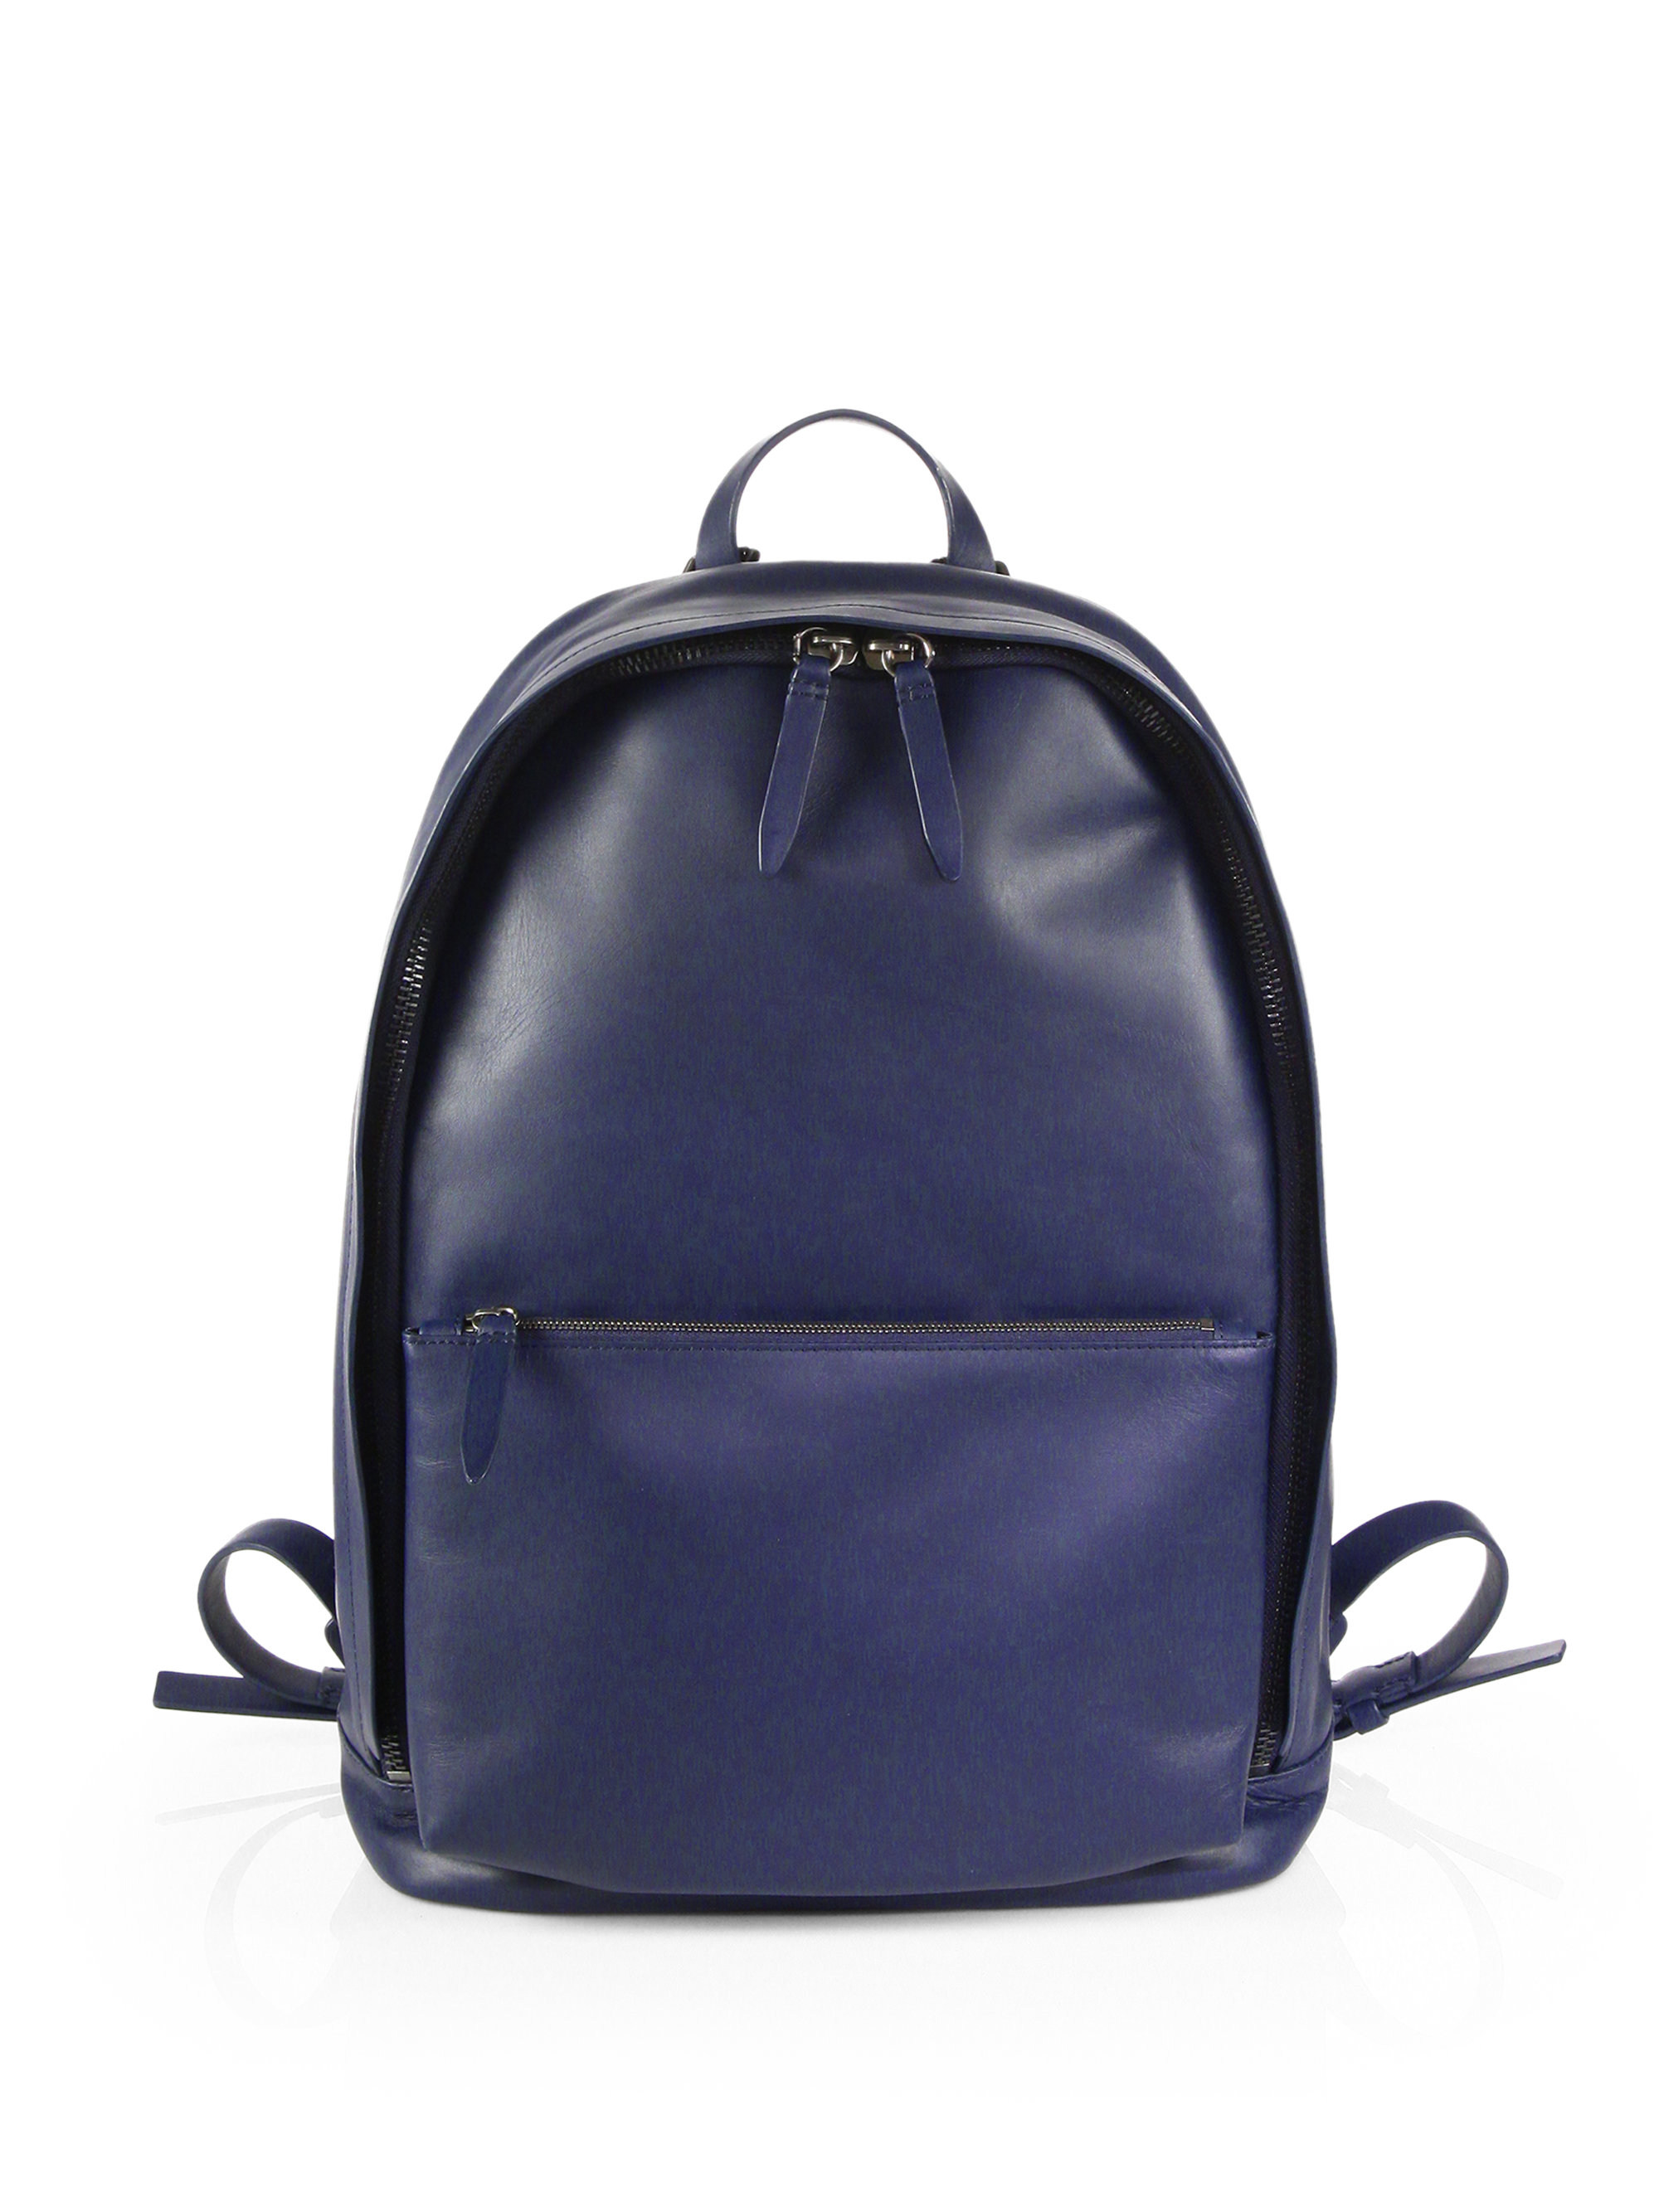 3.1 phillip lim 31 Hour Leather Backpack in Blue for Men | Lyst